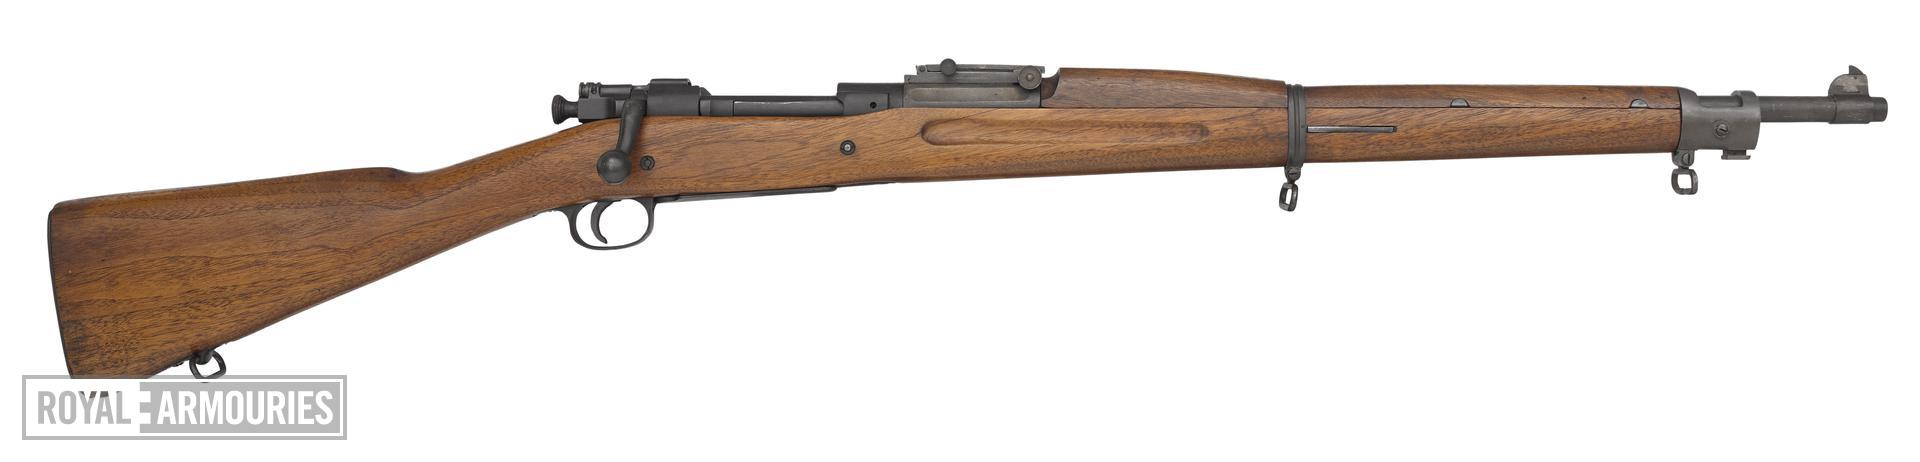 Springfield Model 1903 Mk.I centrefire bolt action rifle, United States, about 1903. For Pedersen device, by Springfield Armoury.